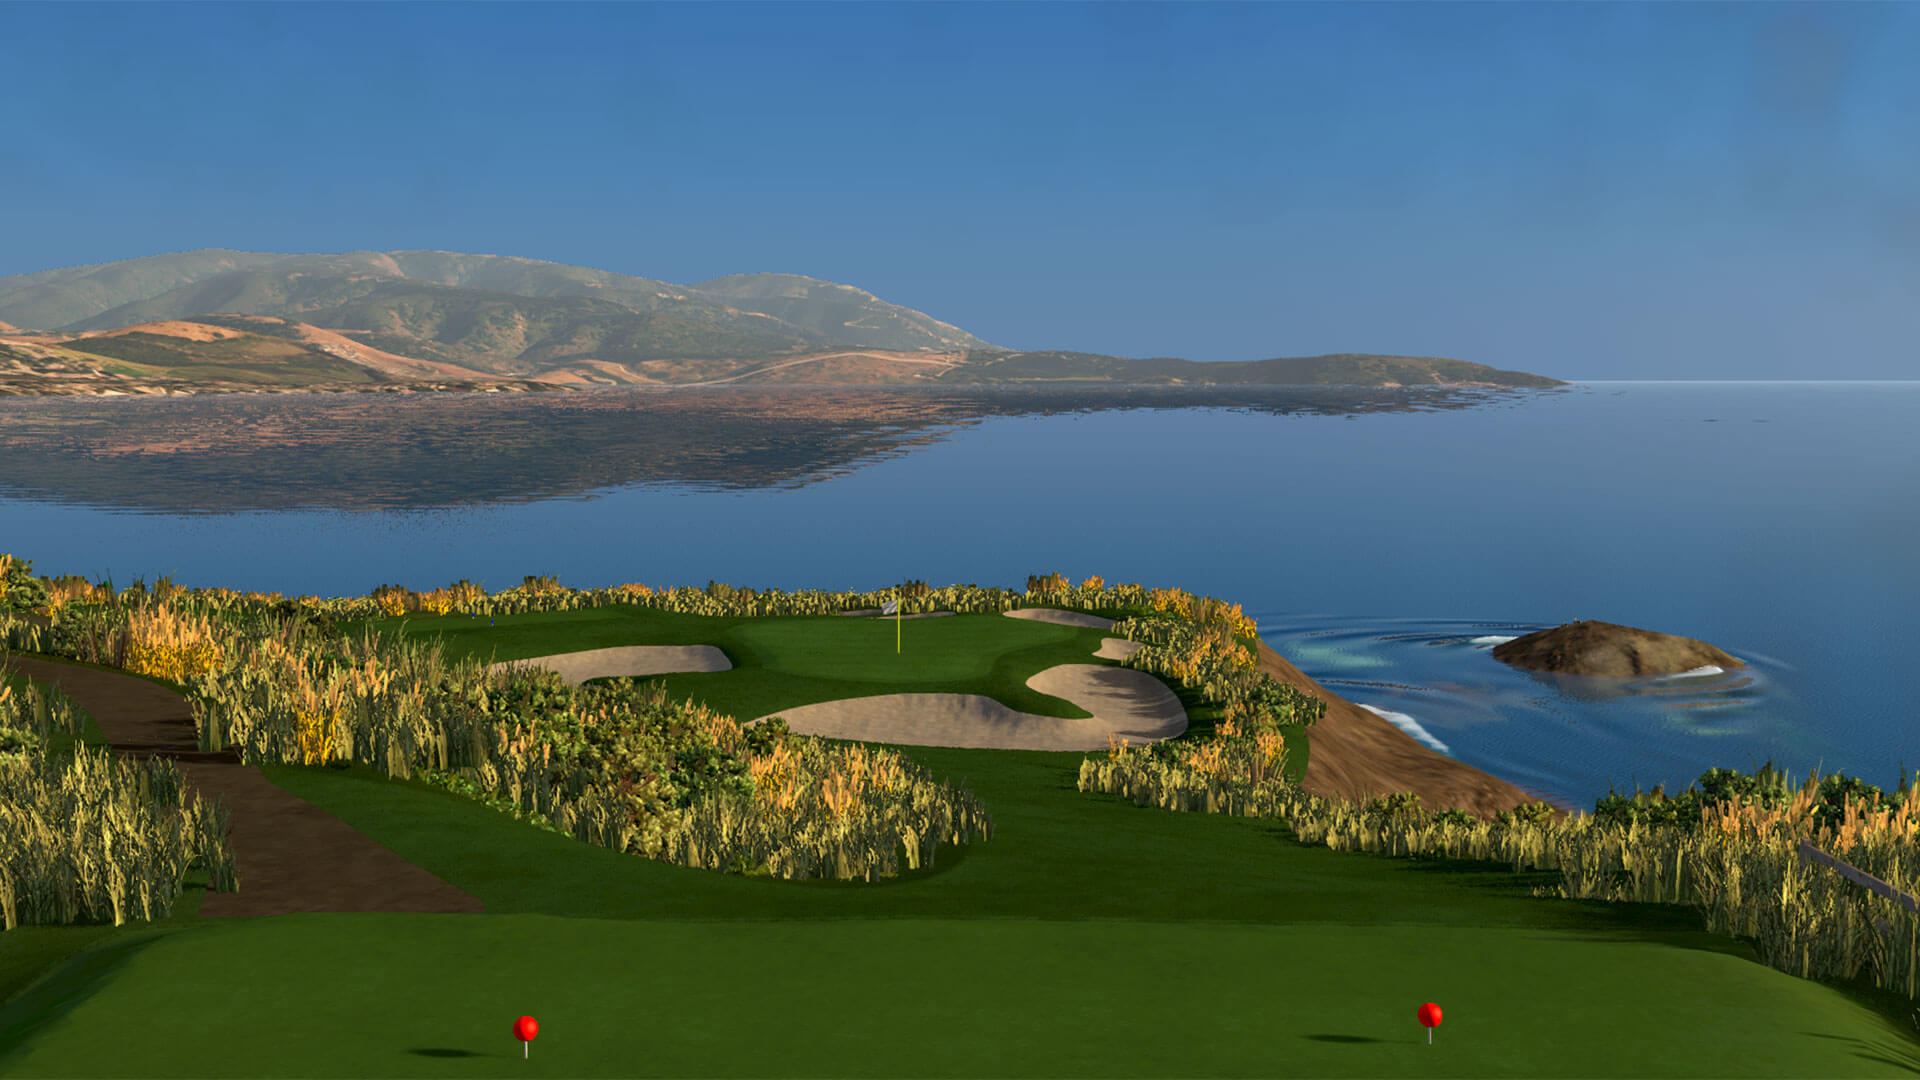 A realistic simulation of a golf course in FSX 2020.